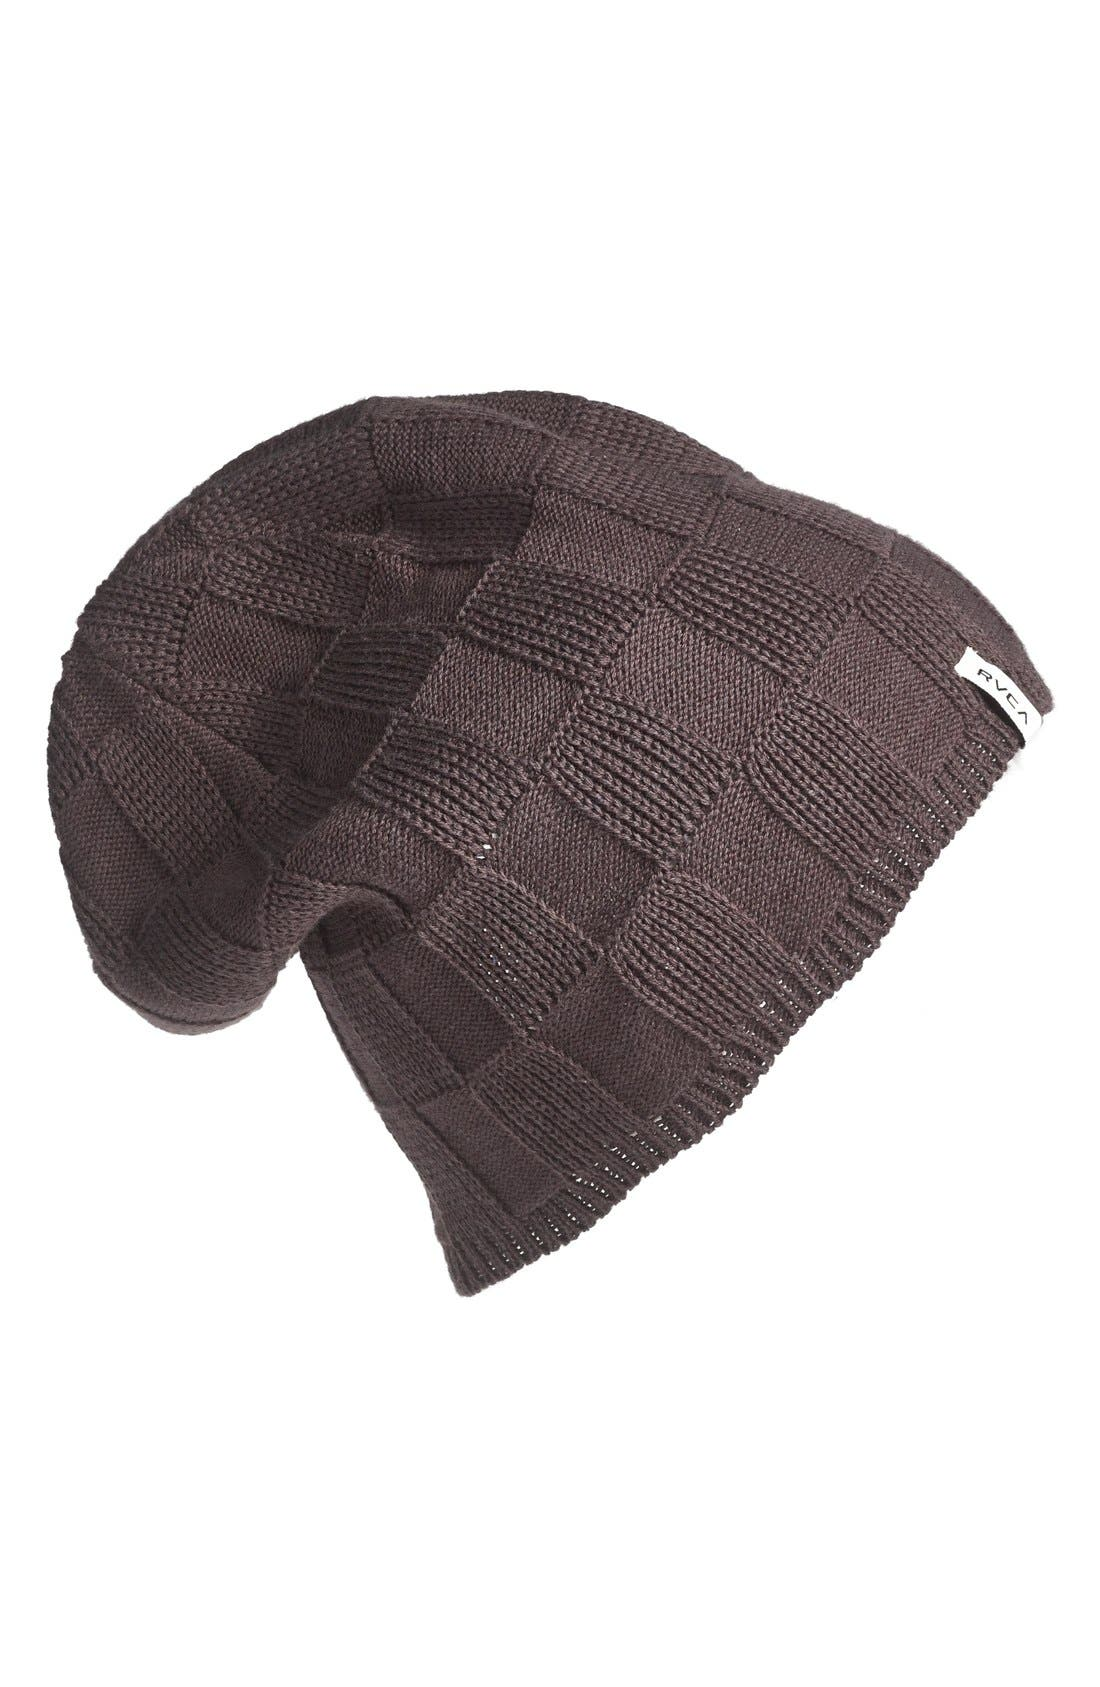 Main Image - RVCA 'Checked Out' Beanie